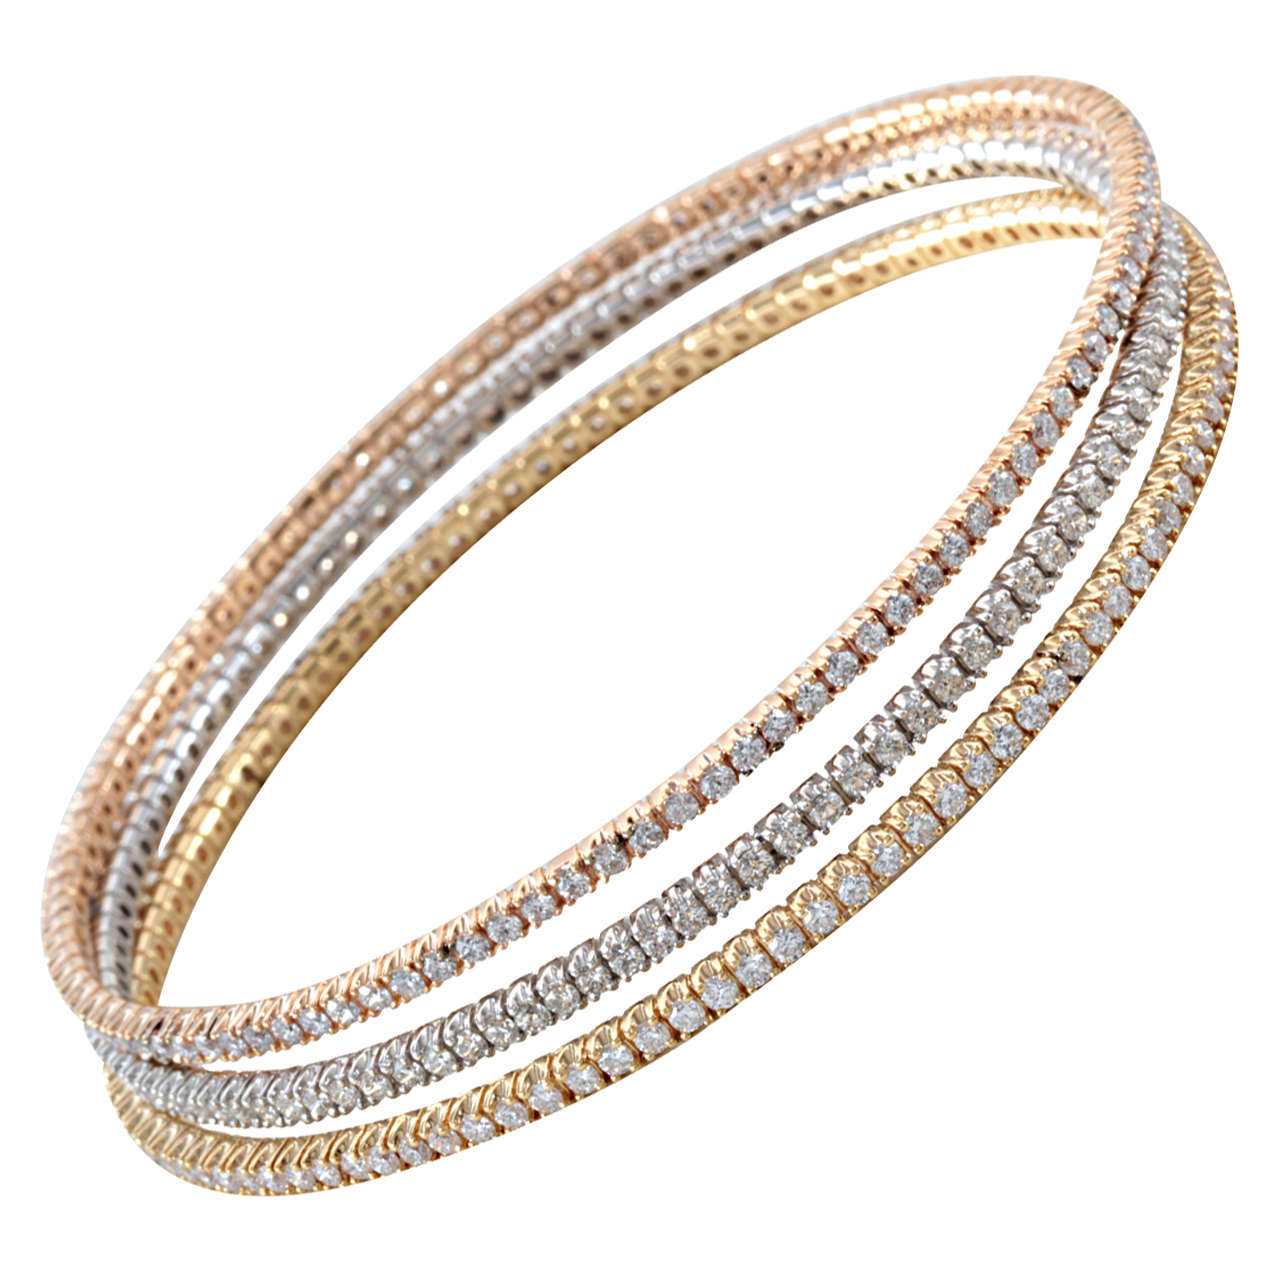 gold micropave bangle beers row white classic pav oval bracelet micropav half diamond one pave bangles de